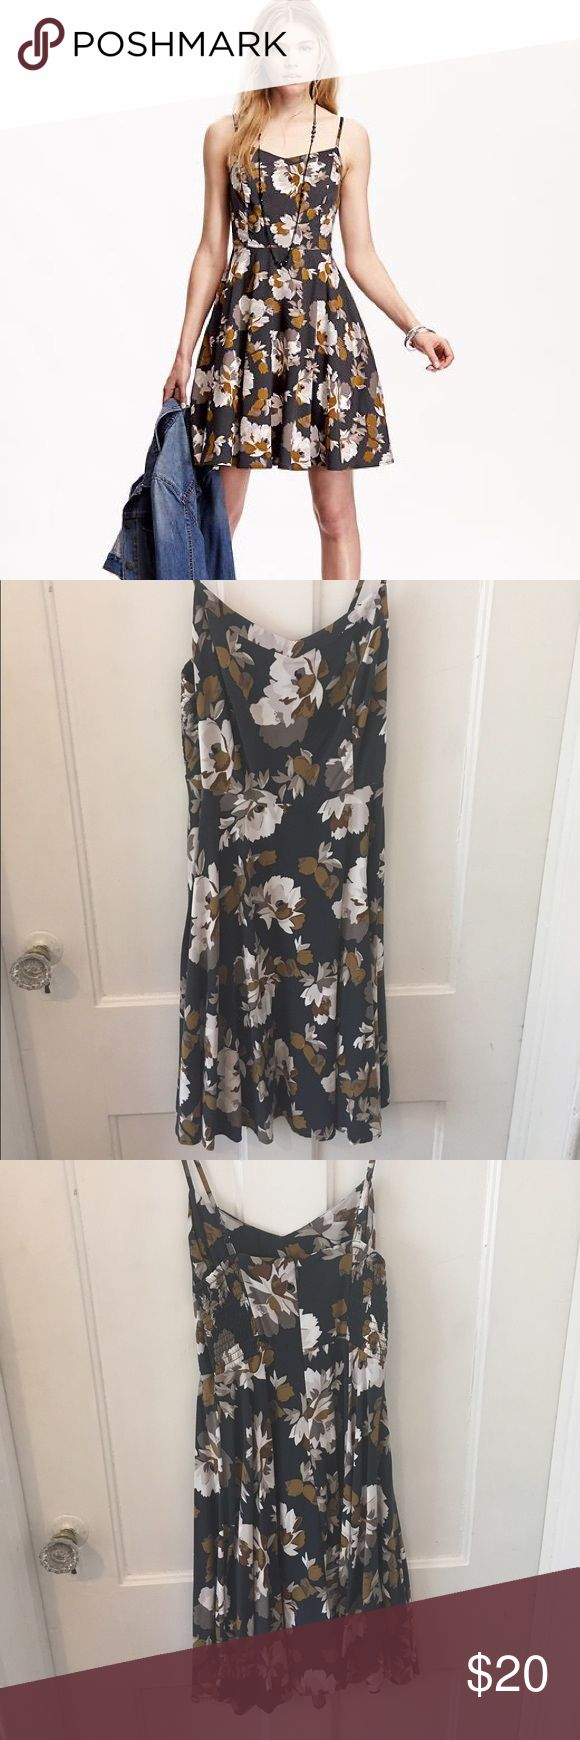 Old Navy Floral Cami Dress Cute cami dress from Old Navy in dark blue, gray, and camel floral. Stretchy panels in bodice and adjustable straps. 100% Rayon. Excellent used condition, worn and washed only a few times! Old Navy Dresses